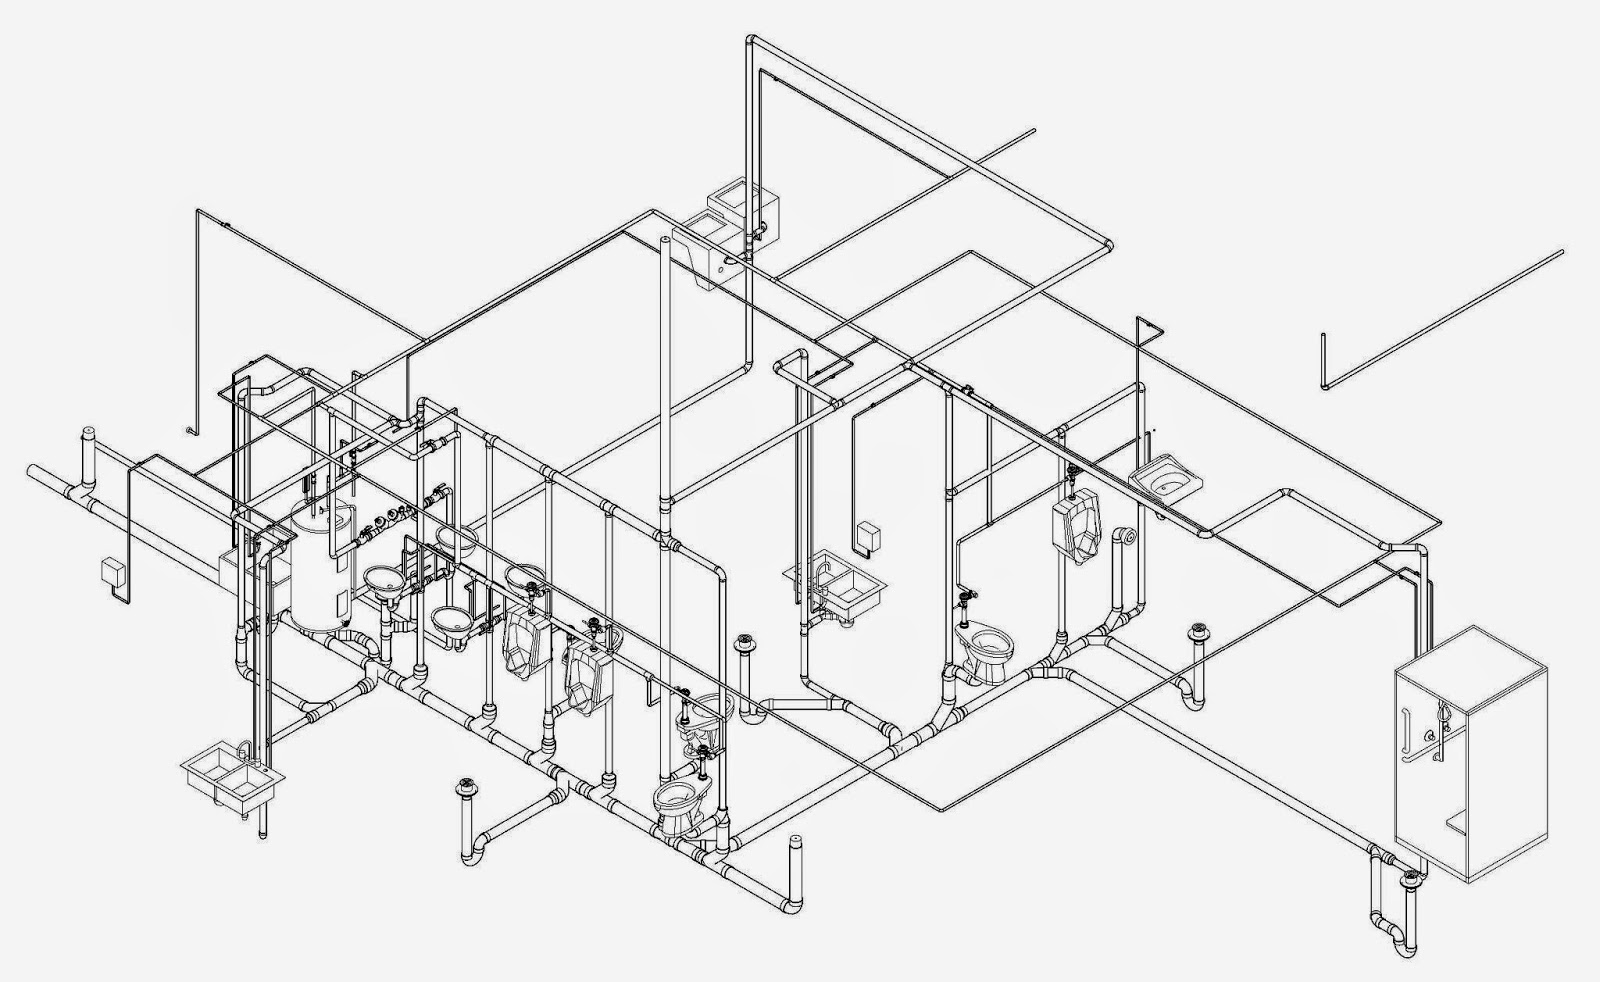 Plumbing Contractor Los Angeles Isometric Plumbing Sketch